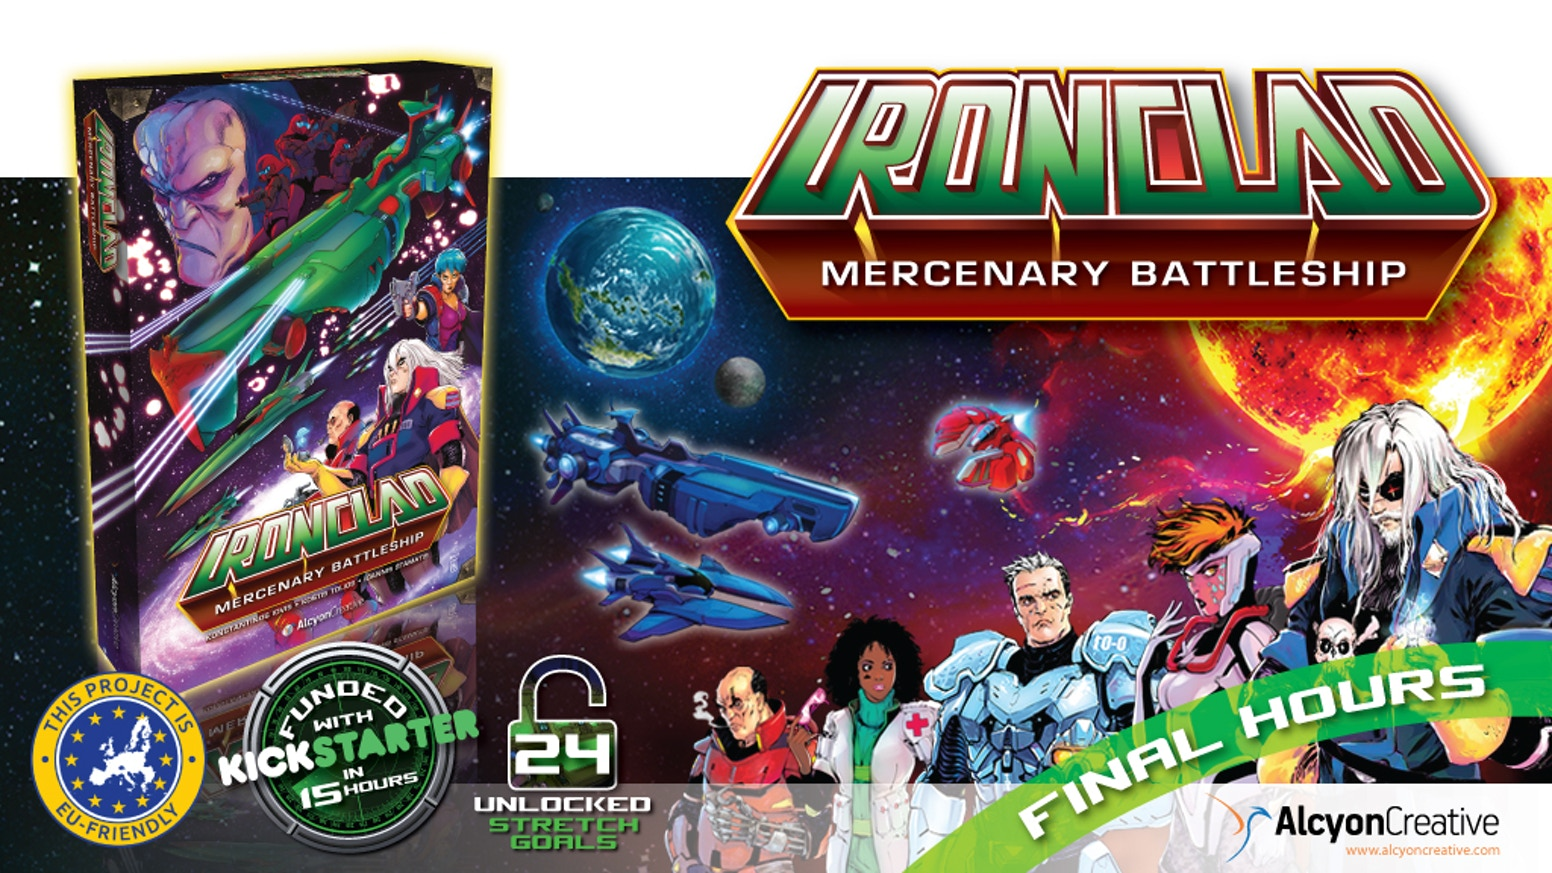 Space opera Co-op game for 1-3 players. Live the story of the battleship Ironclad and her crew of outlaw Heroes amidst a galactic war.